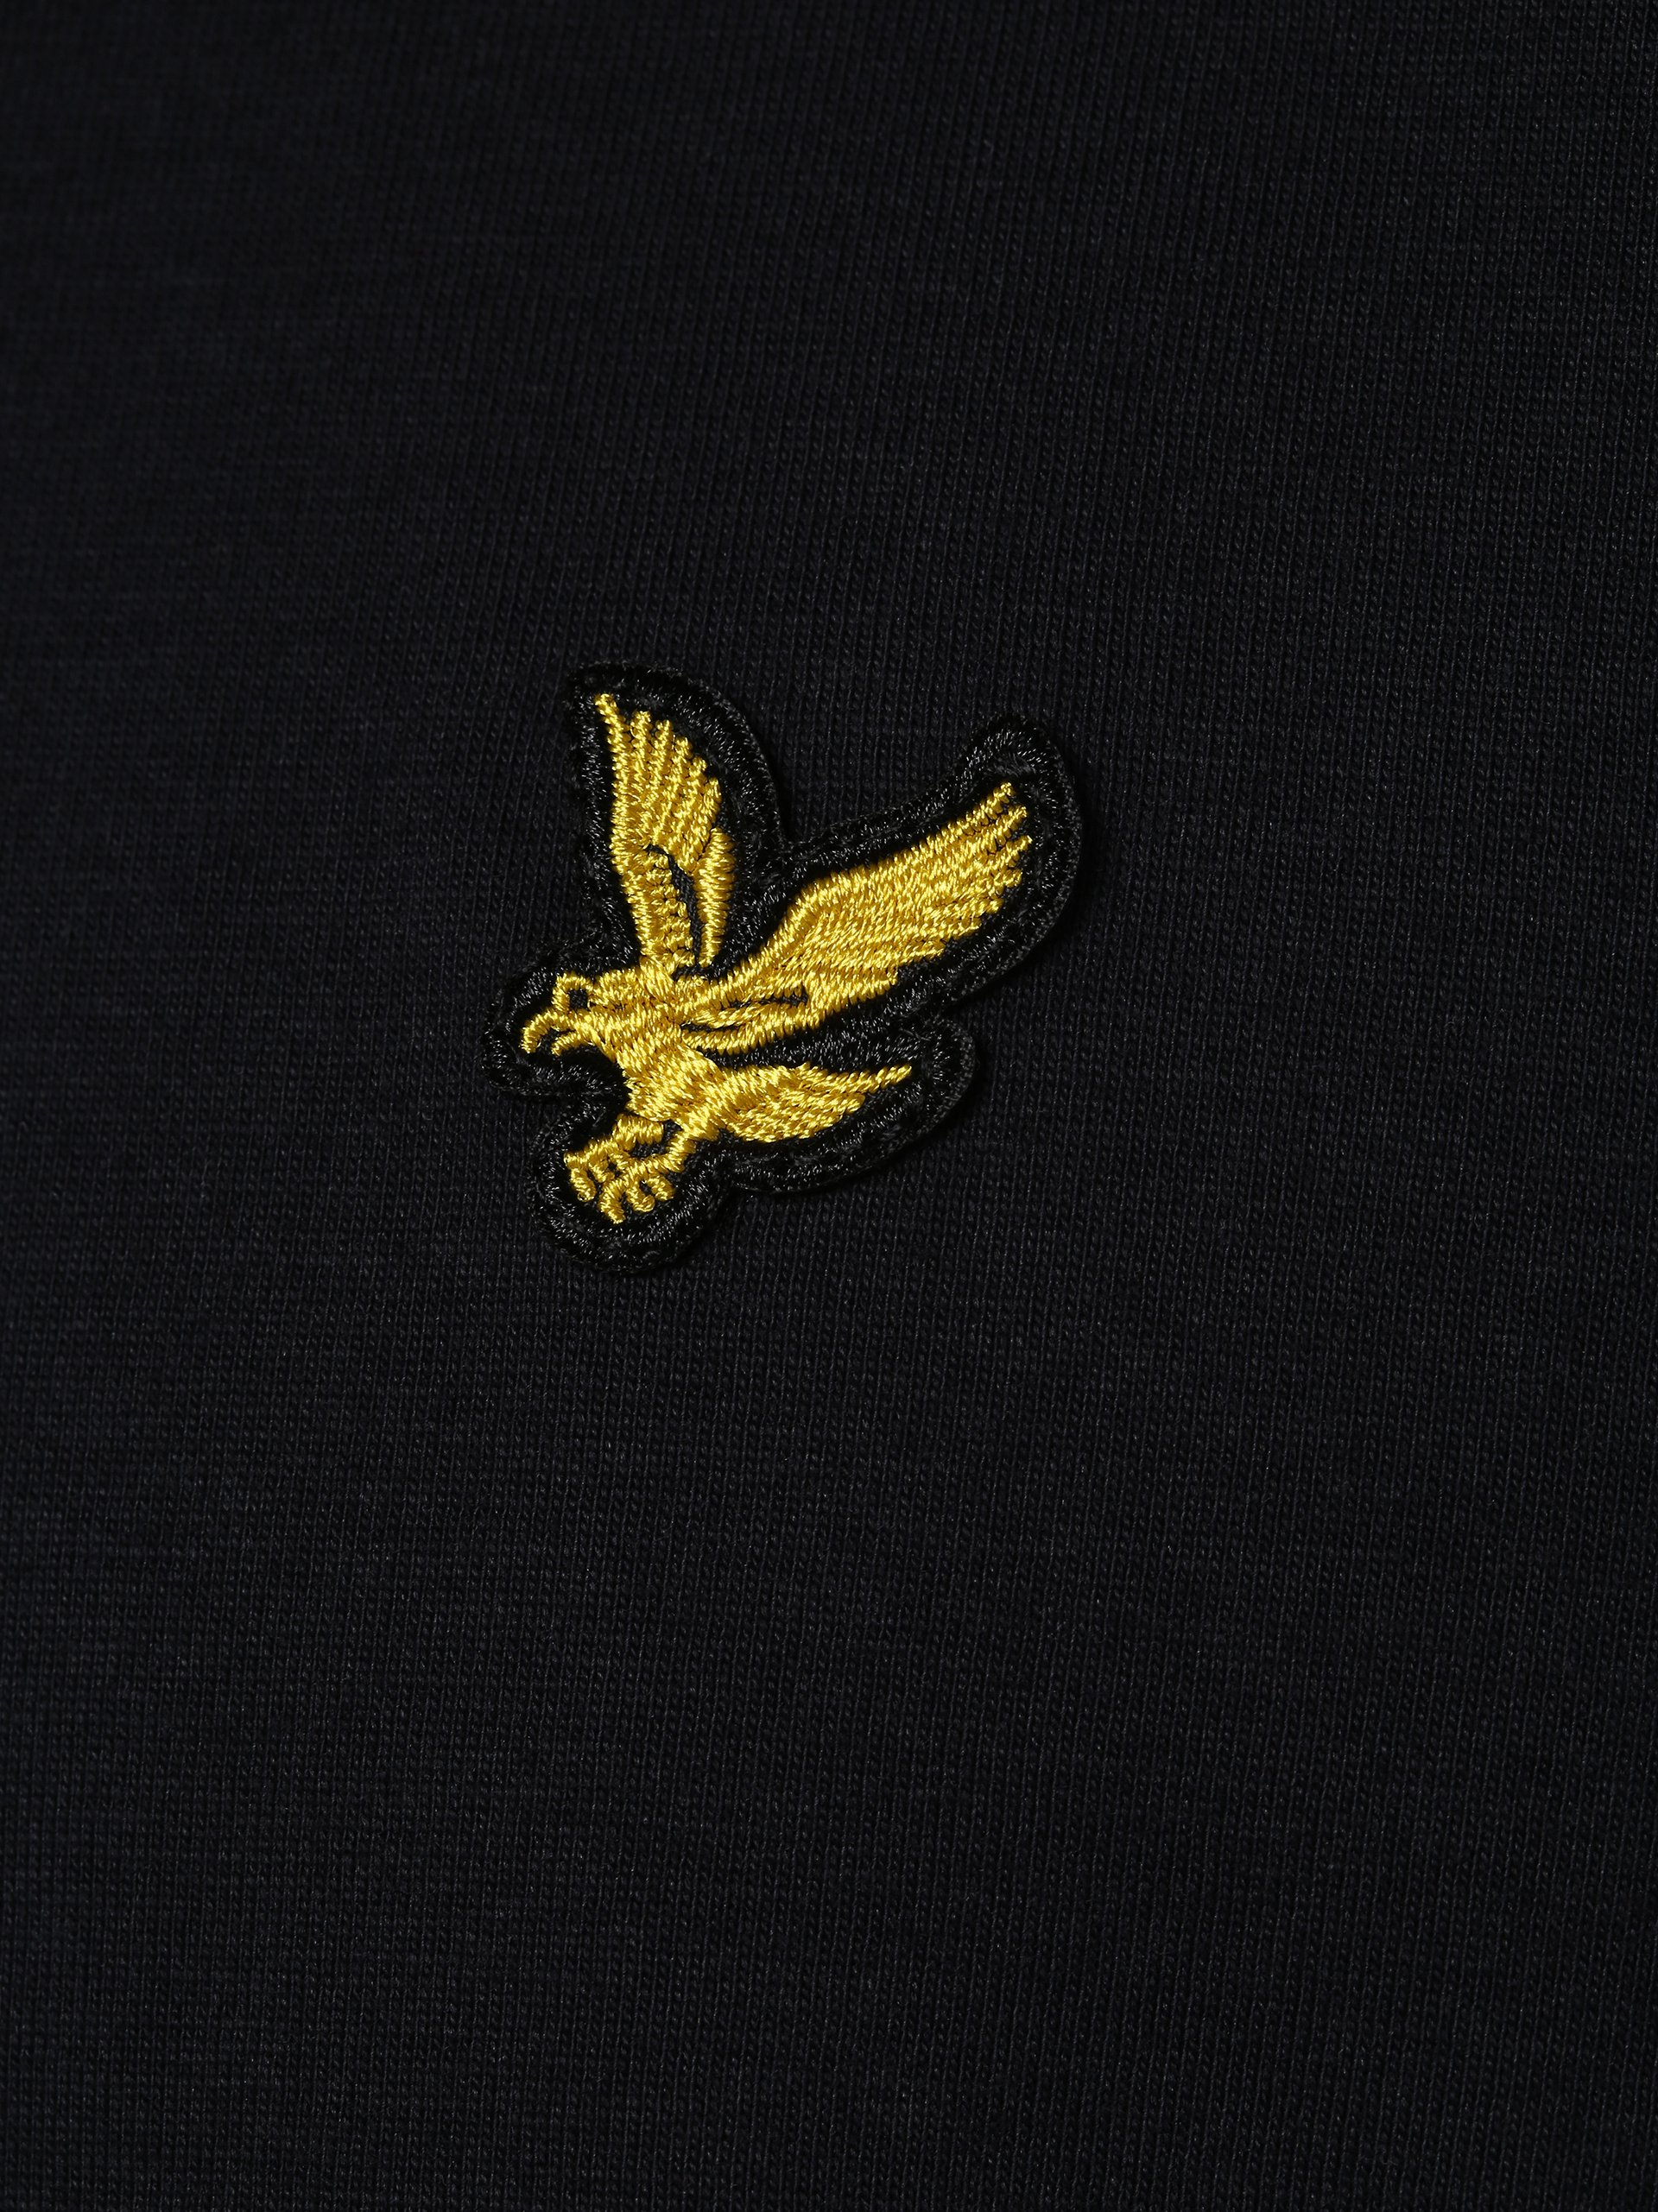 Lyle & Scott T-shirt męski